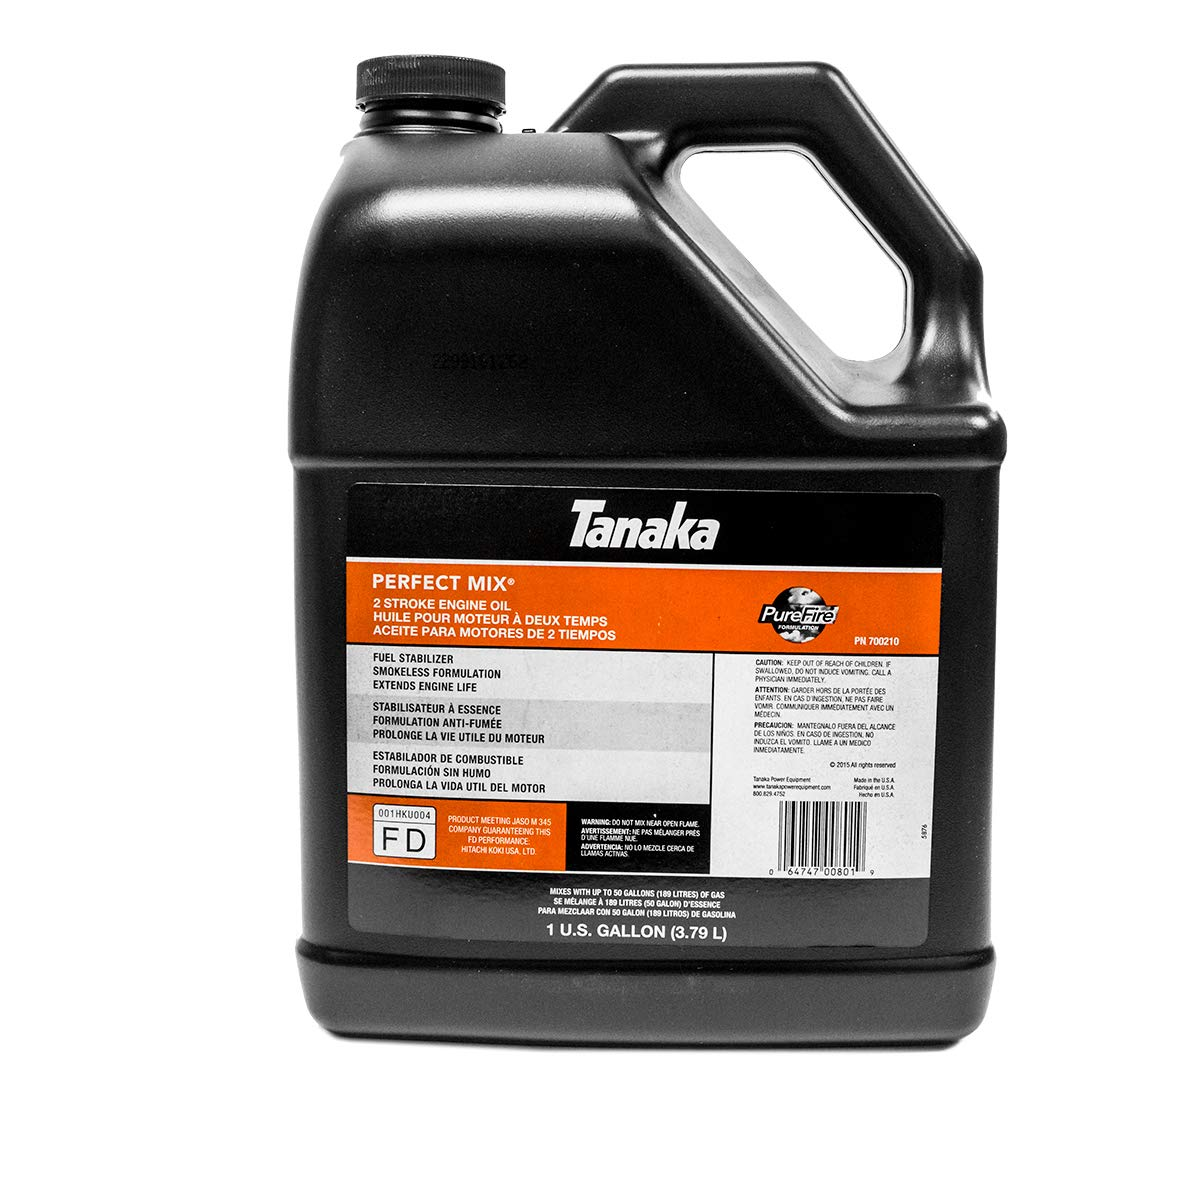 Tanaka 1 Gallon Bottle 2 Cycle Engine Oil Perfect Mix 700210 Two Cycle by Tanaka